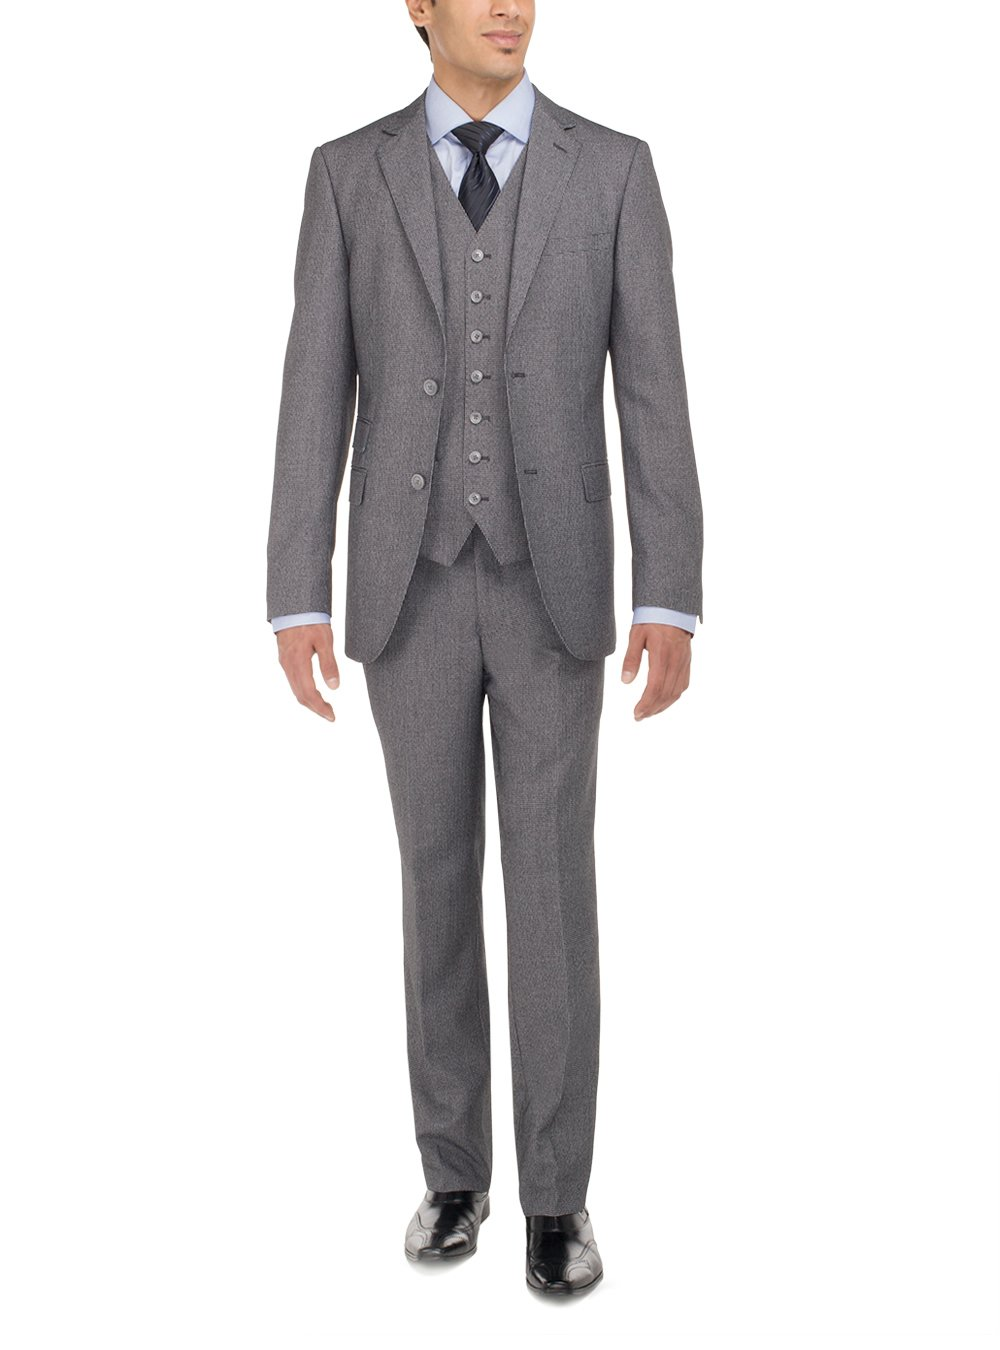 Luciano Natazzi Men's Two Button Tweed 3 Piece Modern Fit Vested Suit (40 Regular US / 50 Regular EU, Gray) by Luciano Natazzi